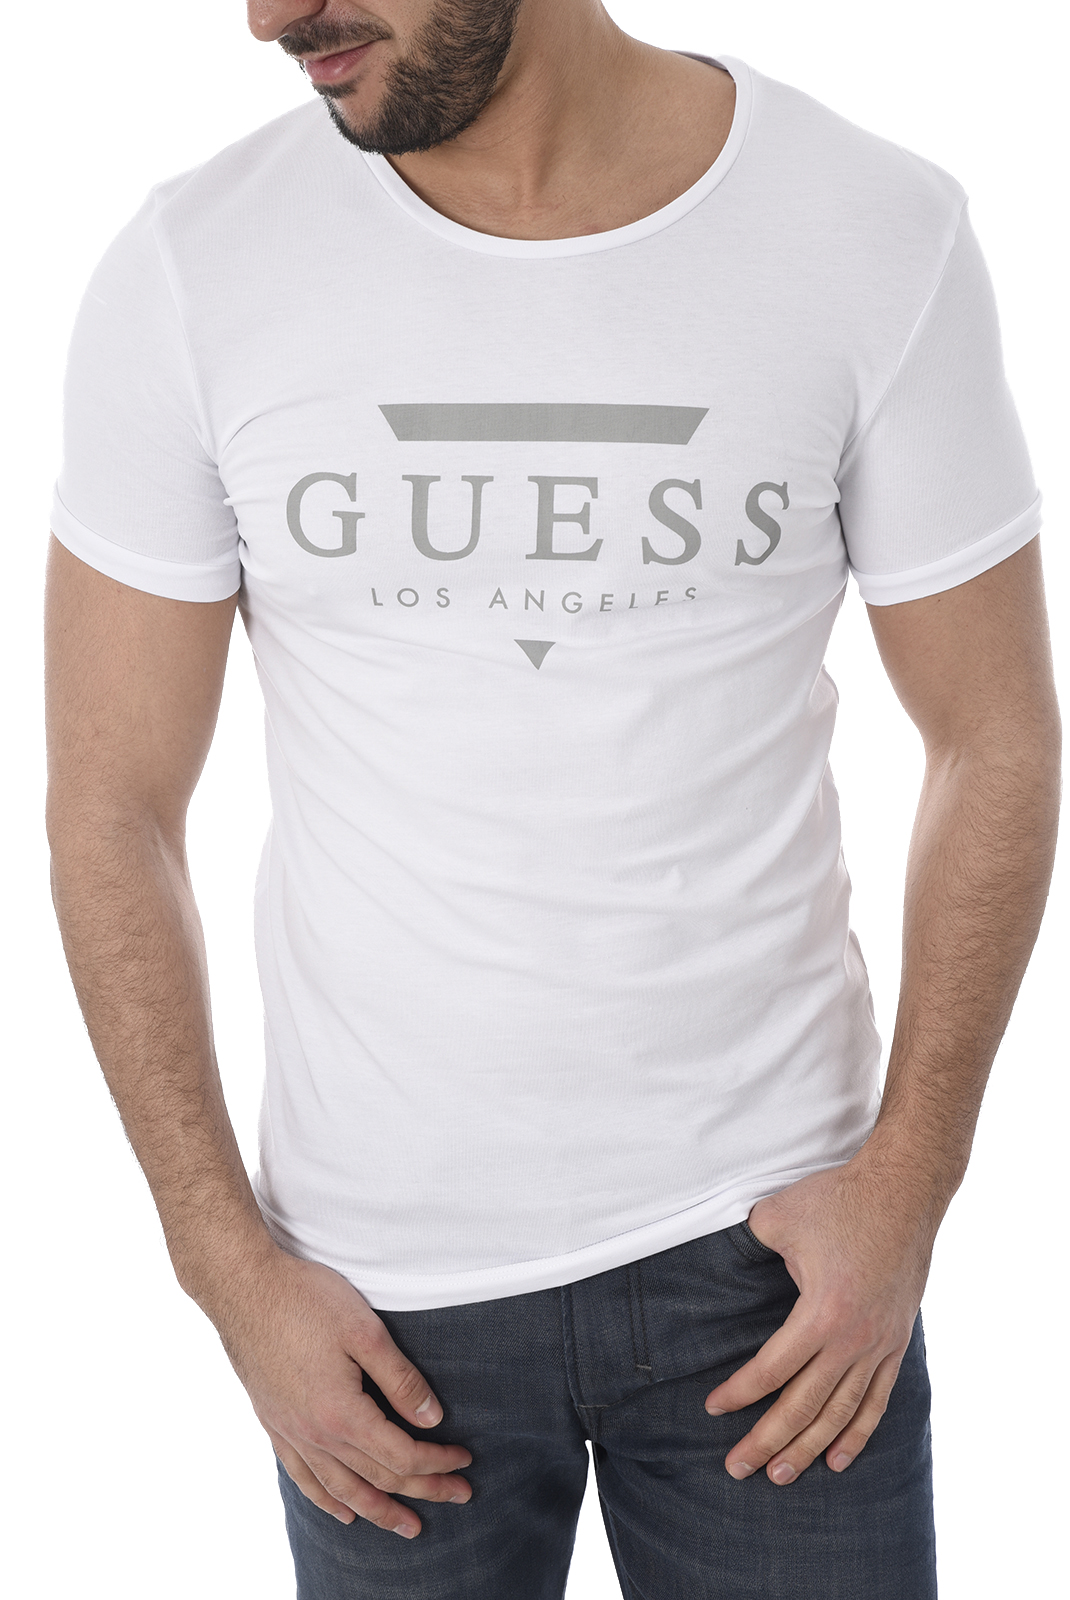 GUESS T-SHIRT HOMME U82M00 JR004 BLANC